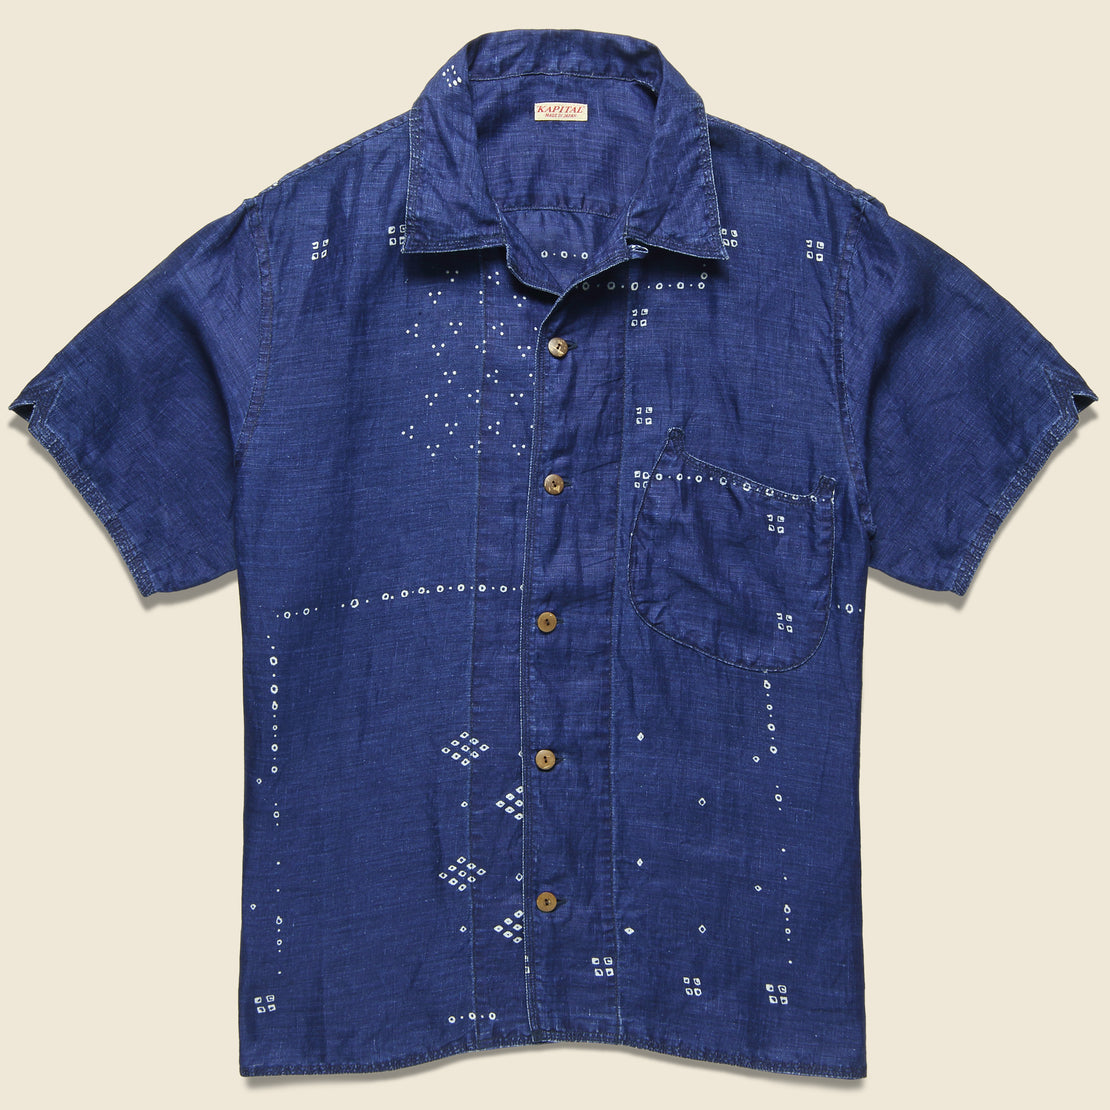 Kapital French Linen Aloha Shirt - Indigo